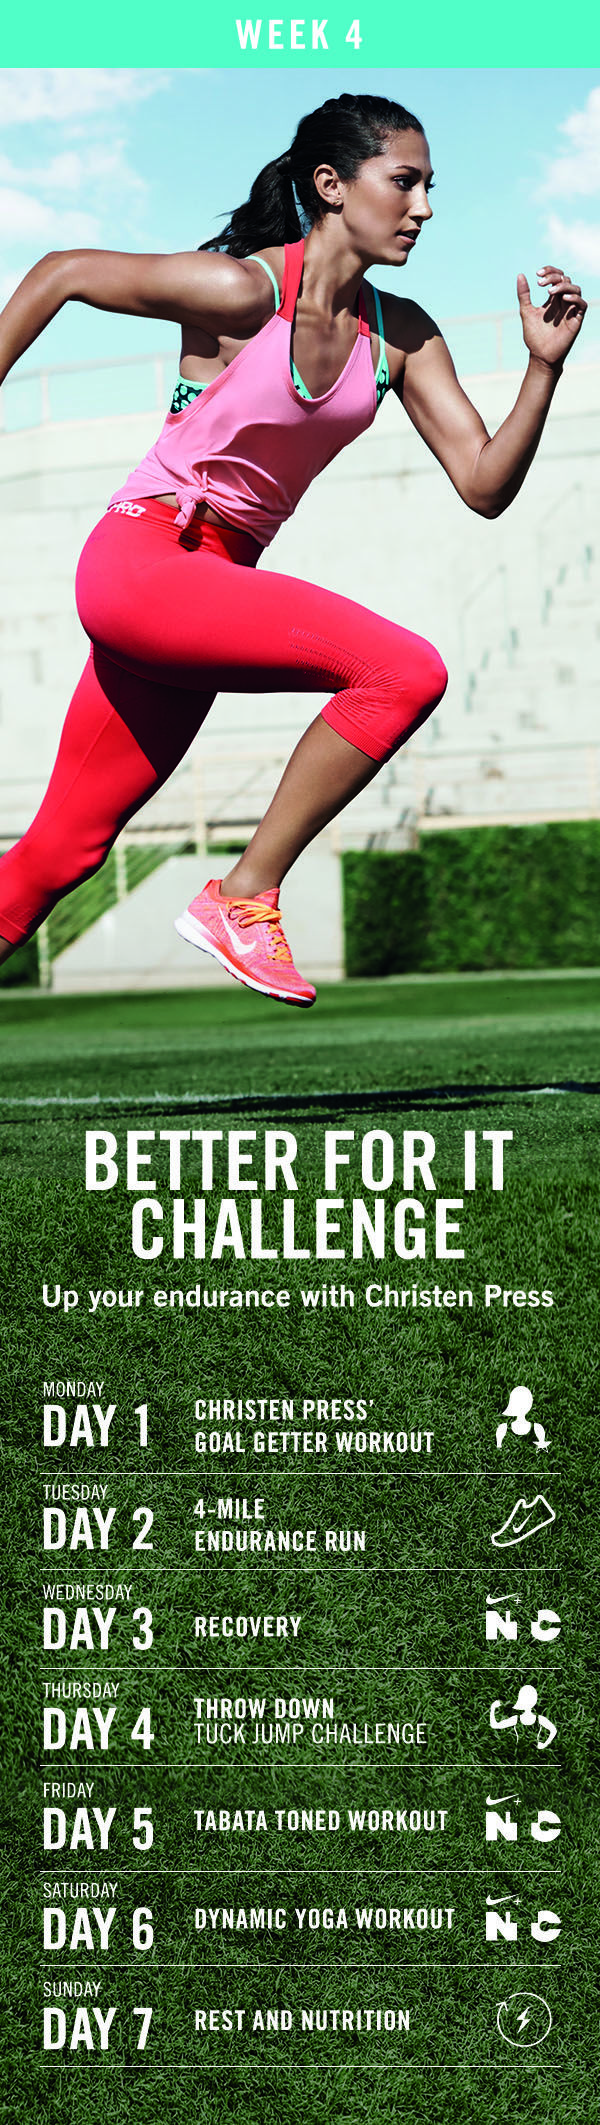 Finish April strong with week four's lineup of energizing workouts. The Nike+ Training Club 90-Day Better For It Challenge.